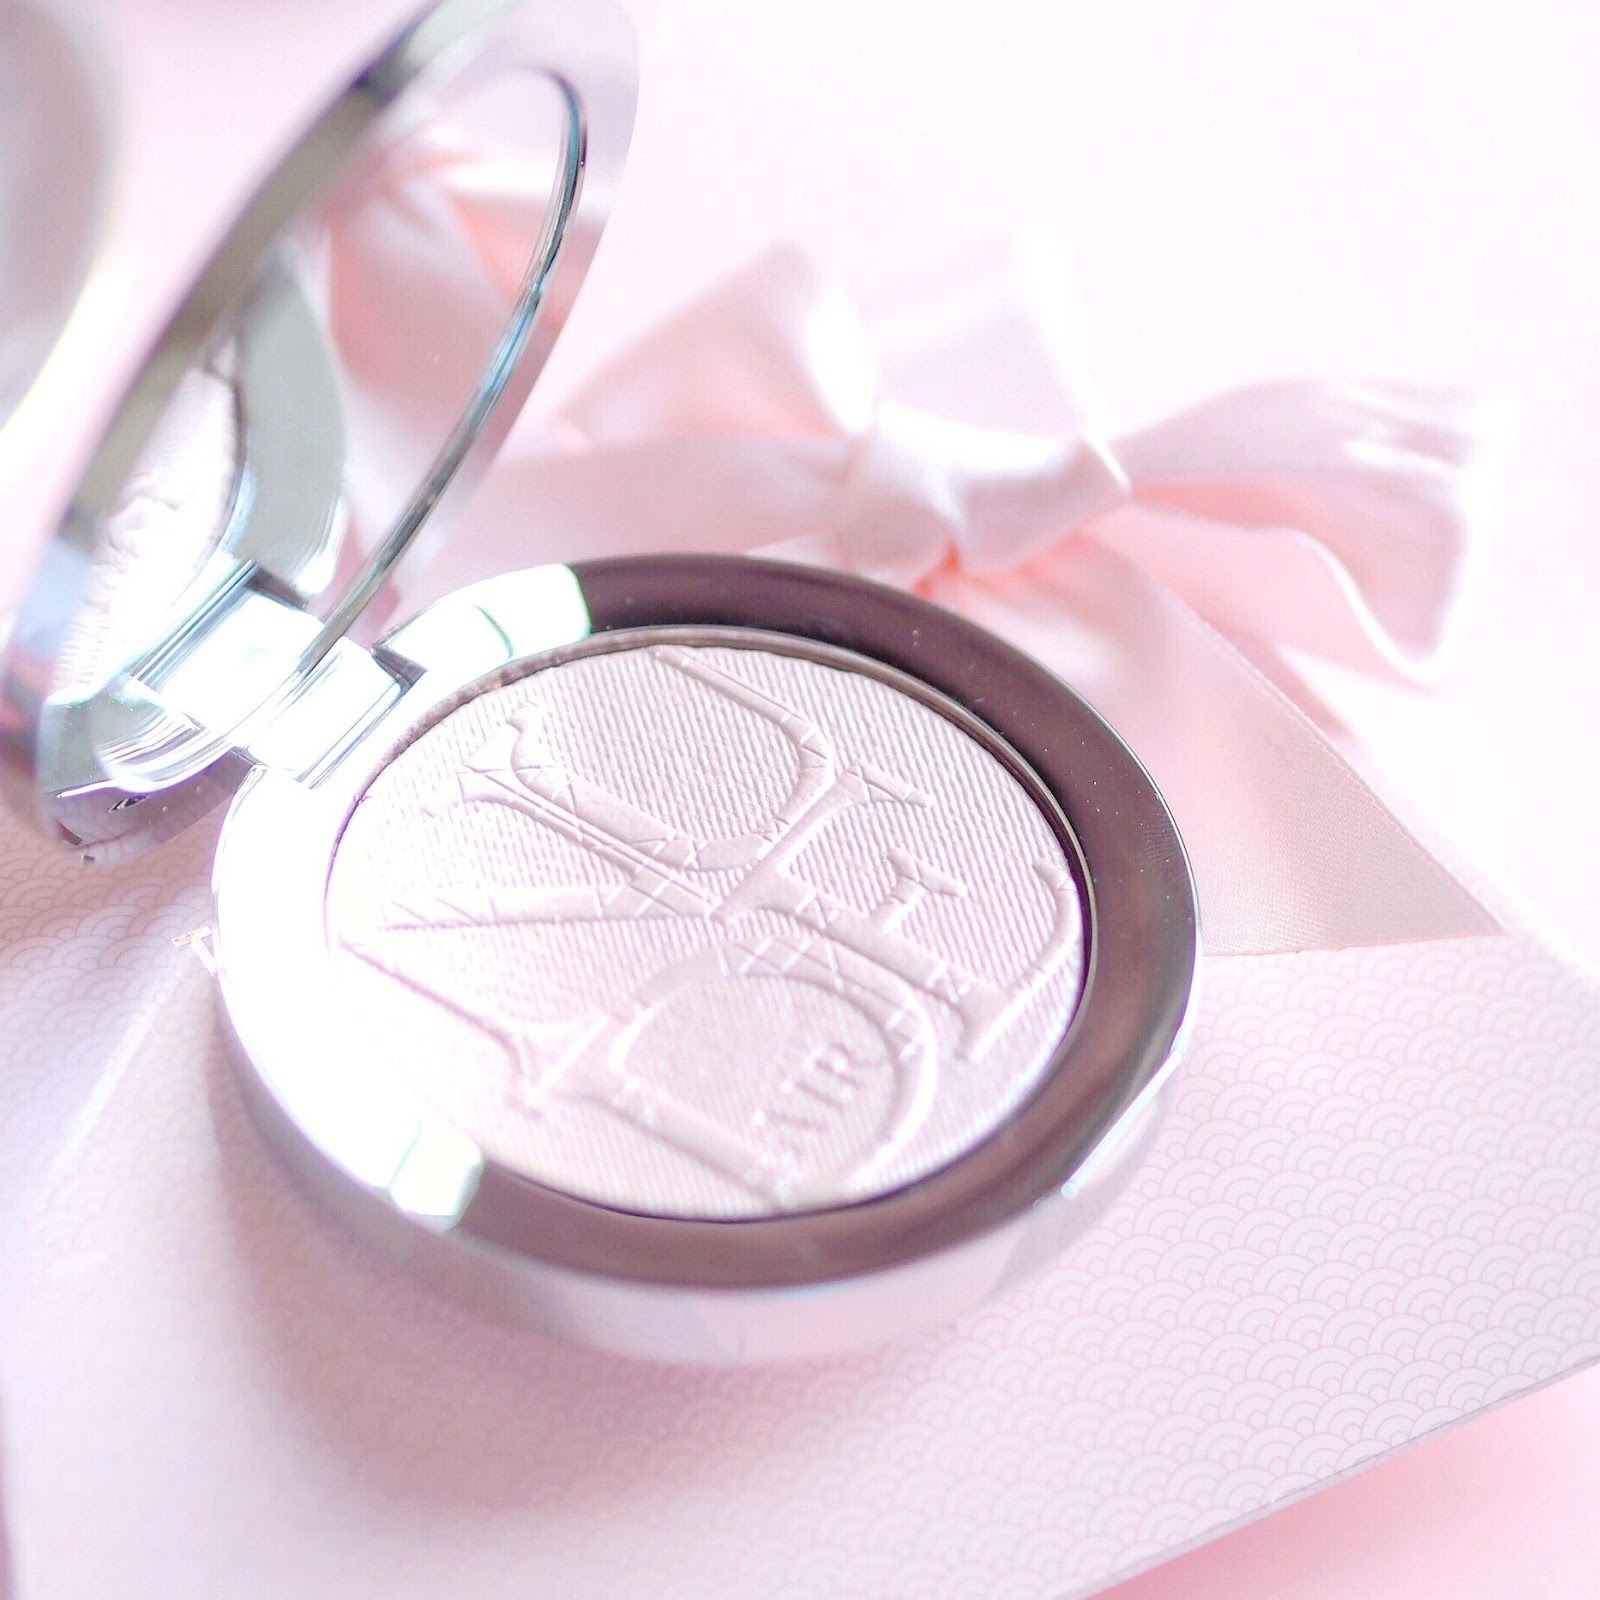 Dior Nude Air Luminizer | What I Got Treated To On Christmas Day